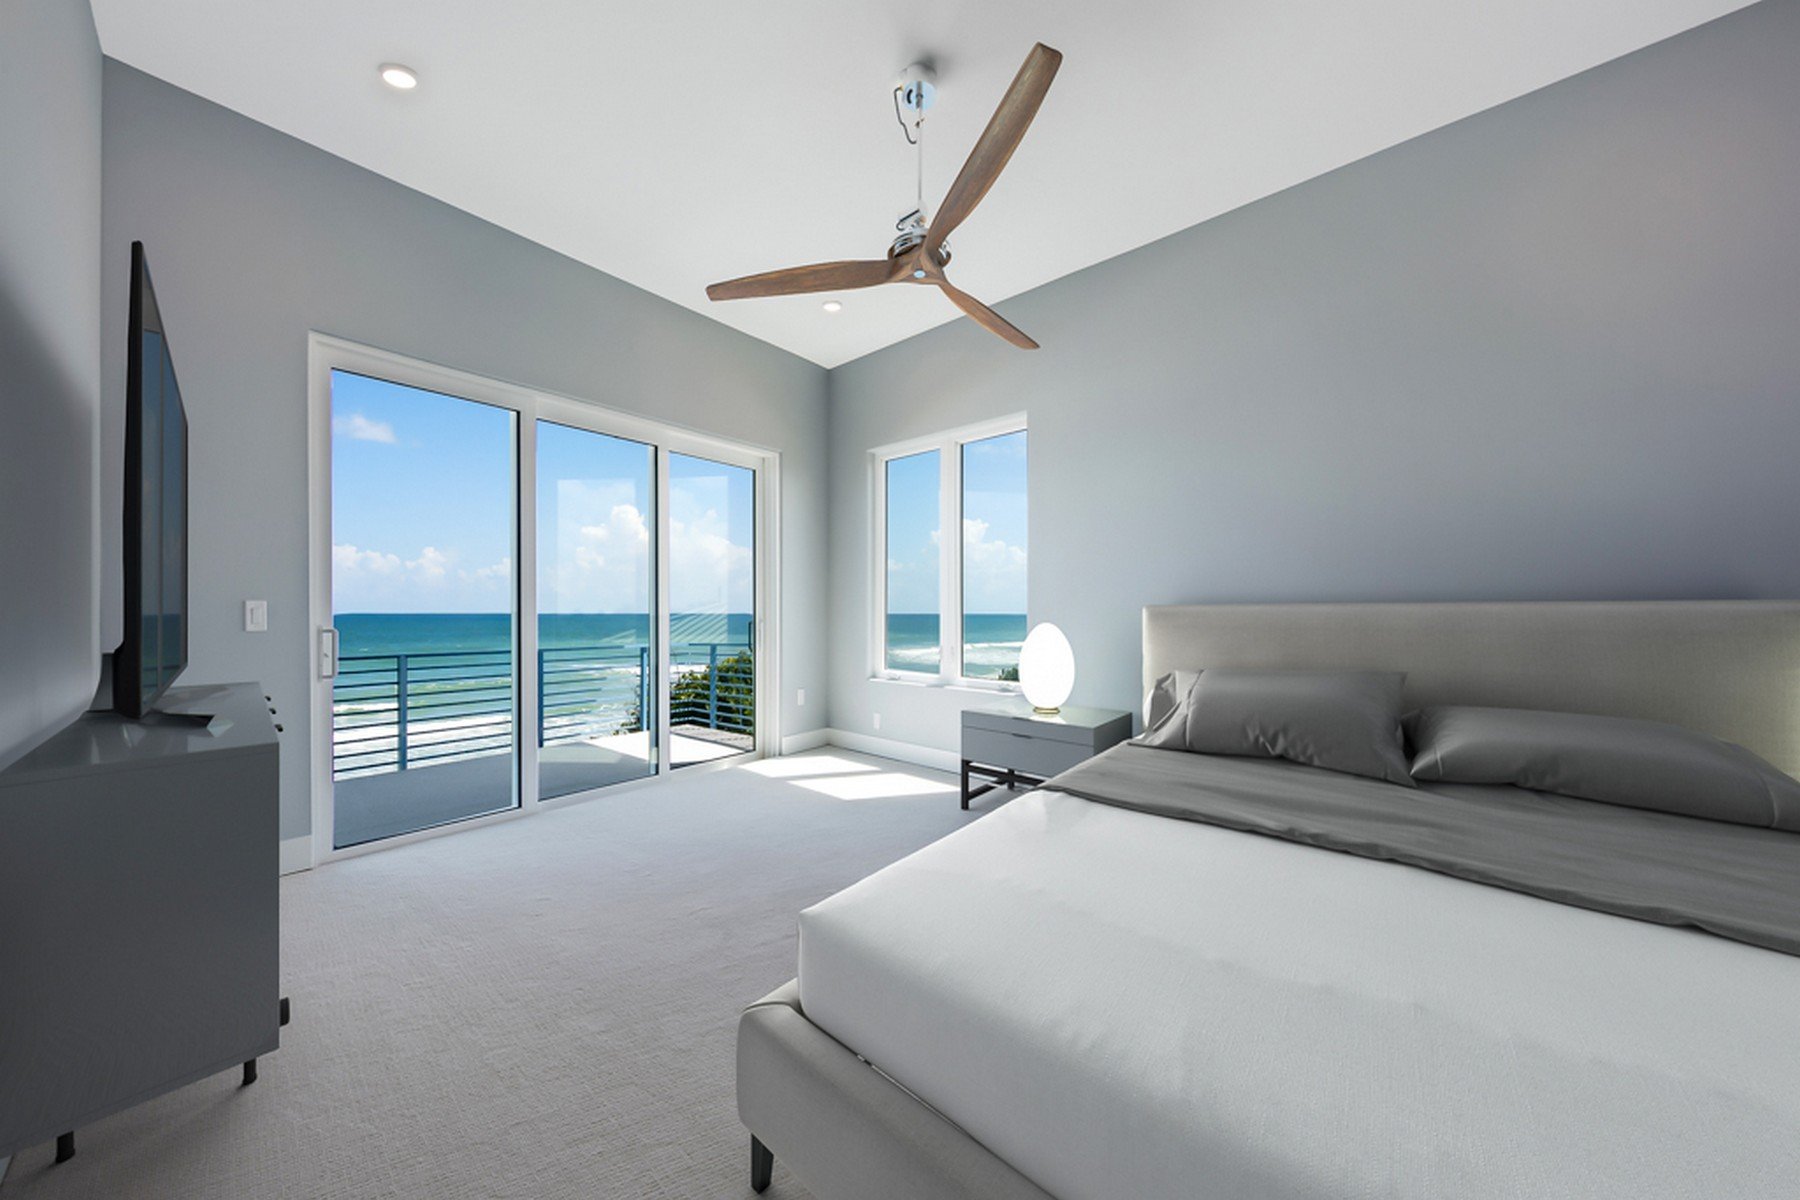 Additional photo for property listing at Contemporary Oceanfront Home 5285 S. Highway A1A Melbourne Beach, Florida 32951 United States